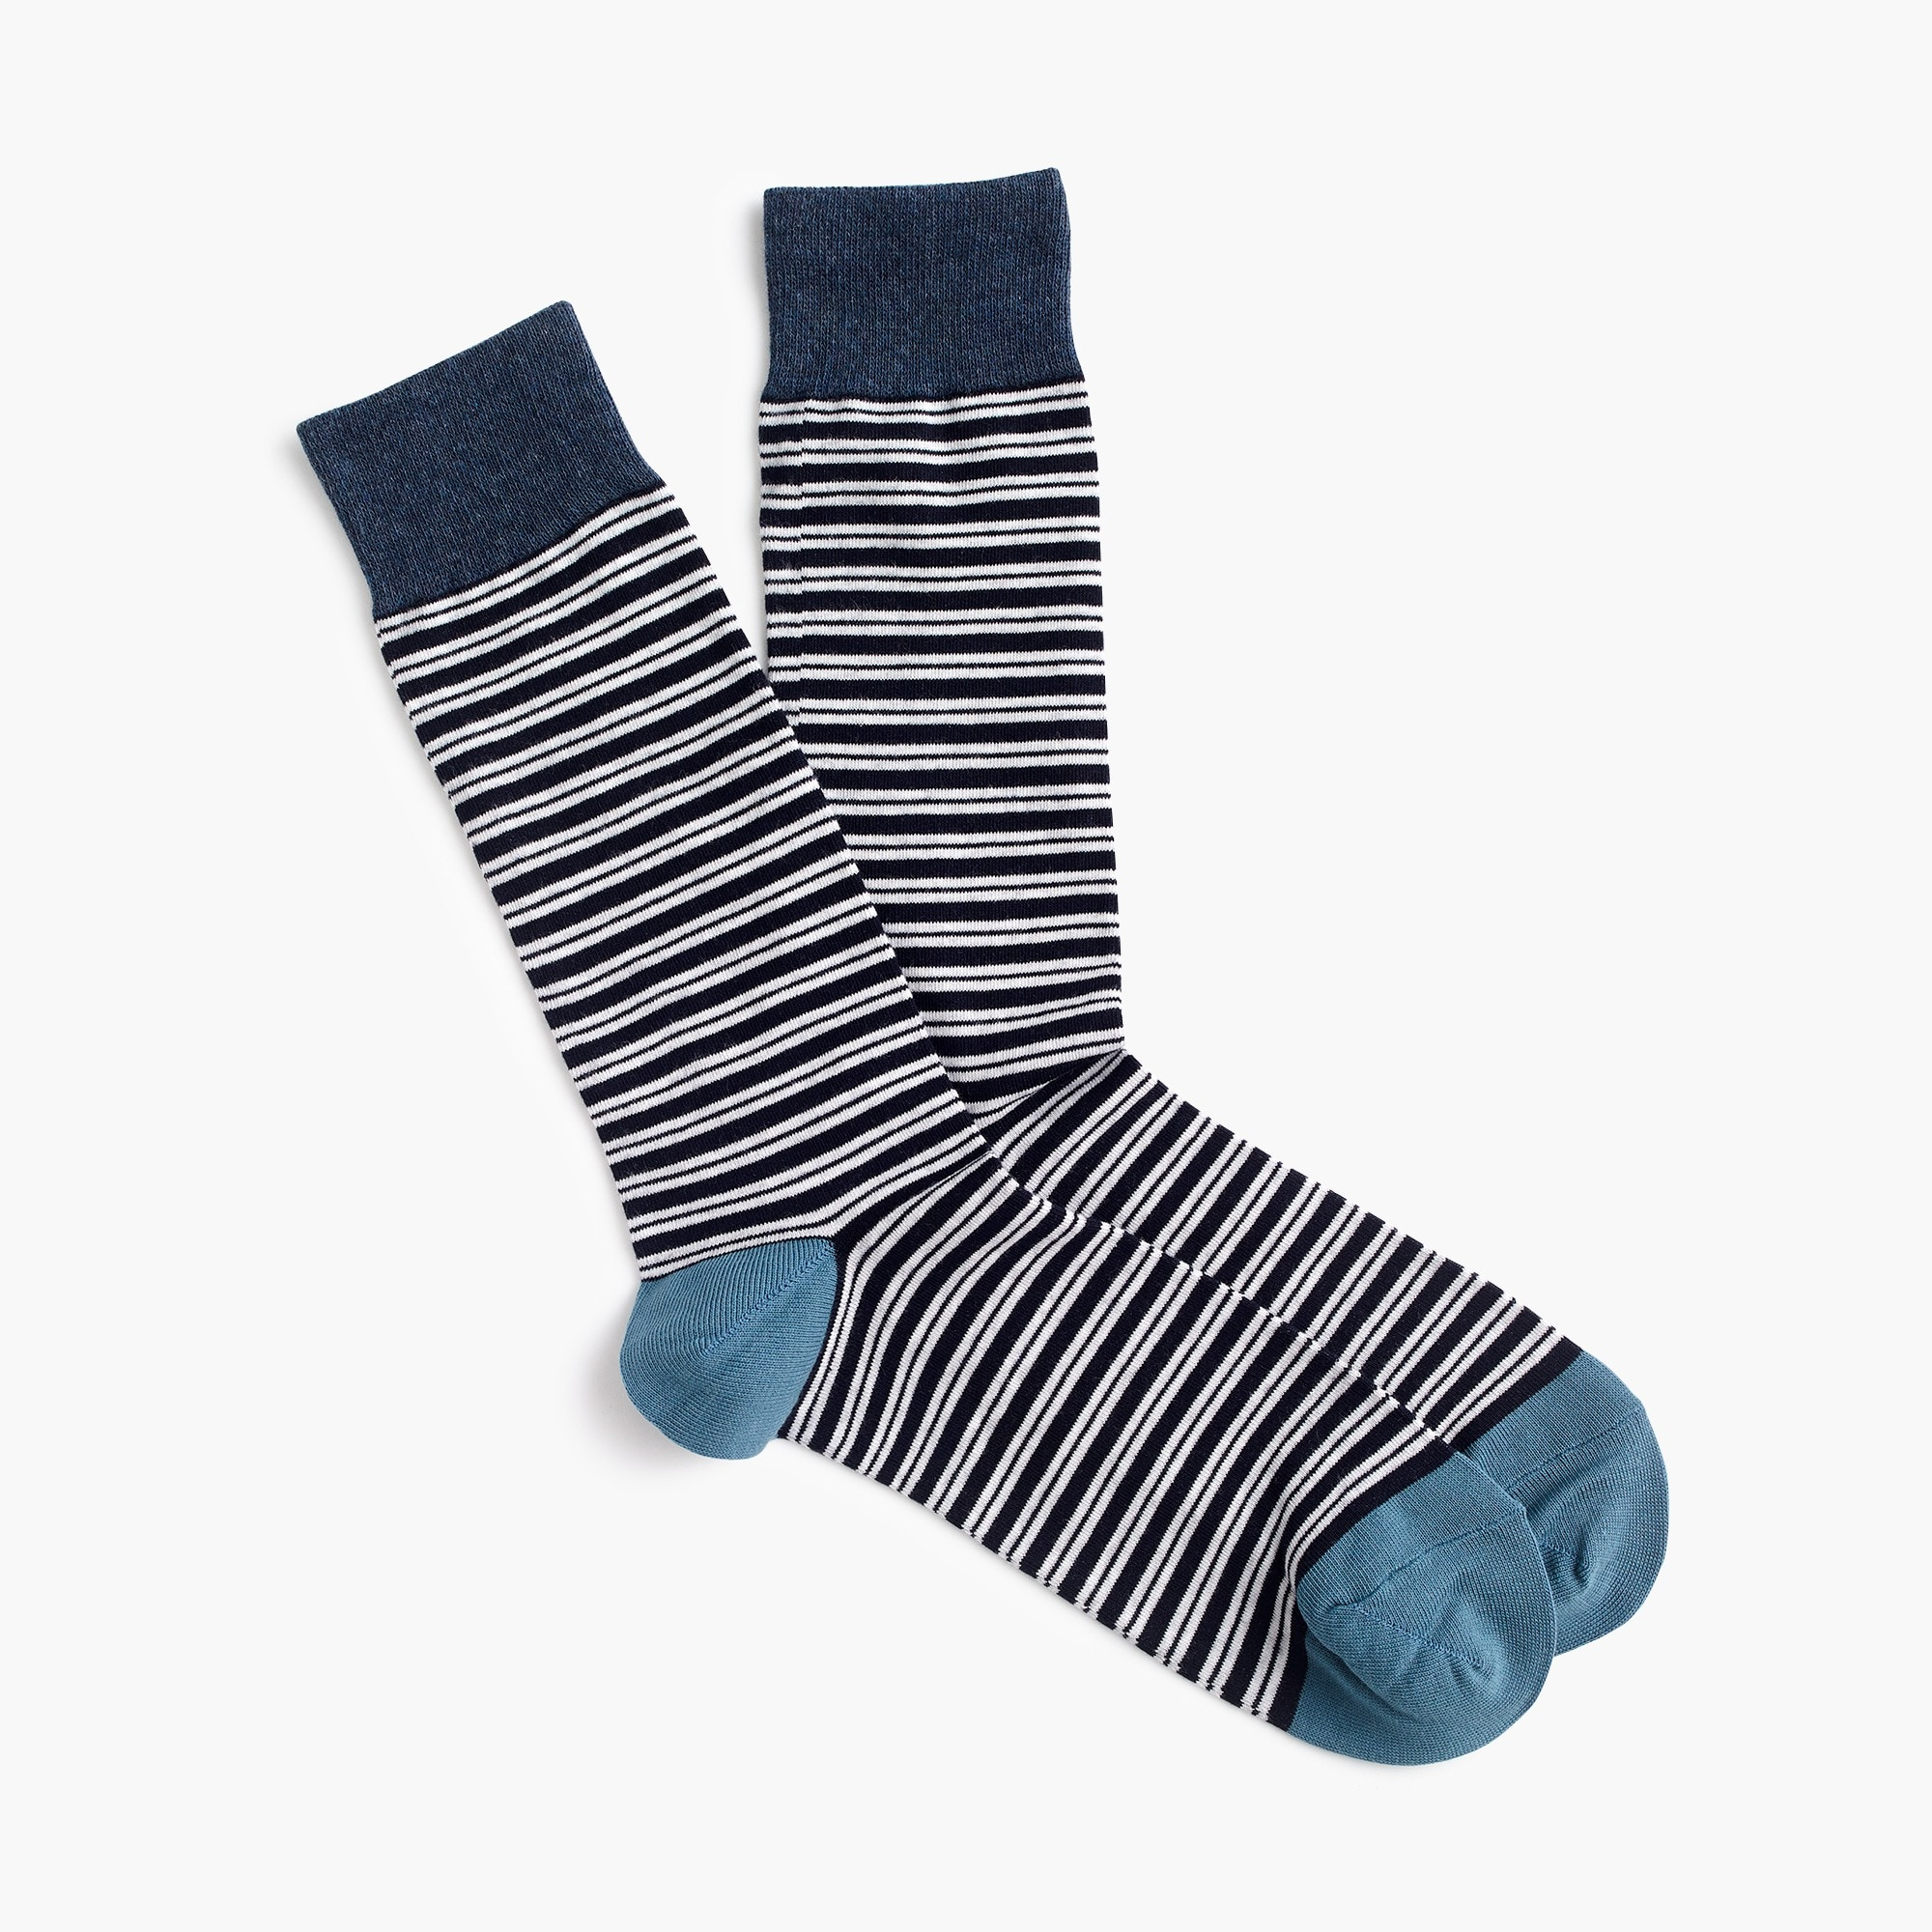 Navy striped socks men socks c